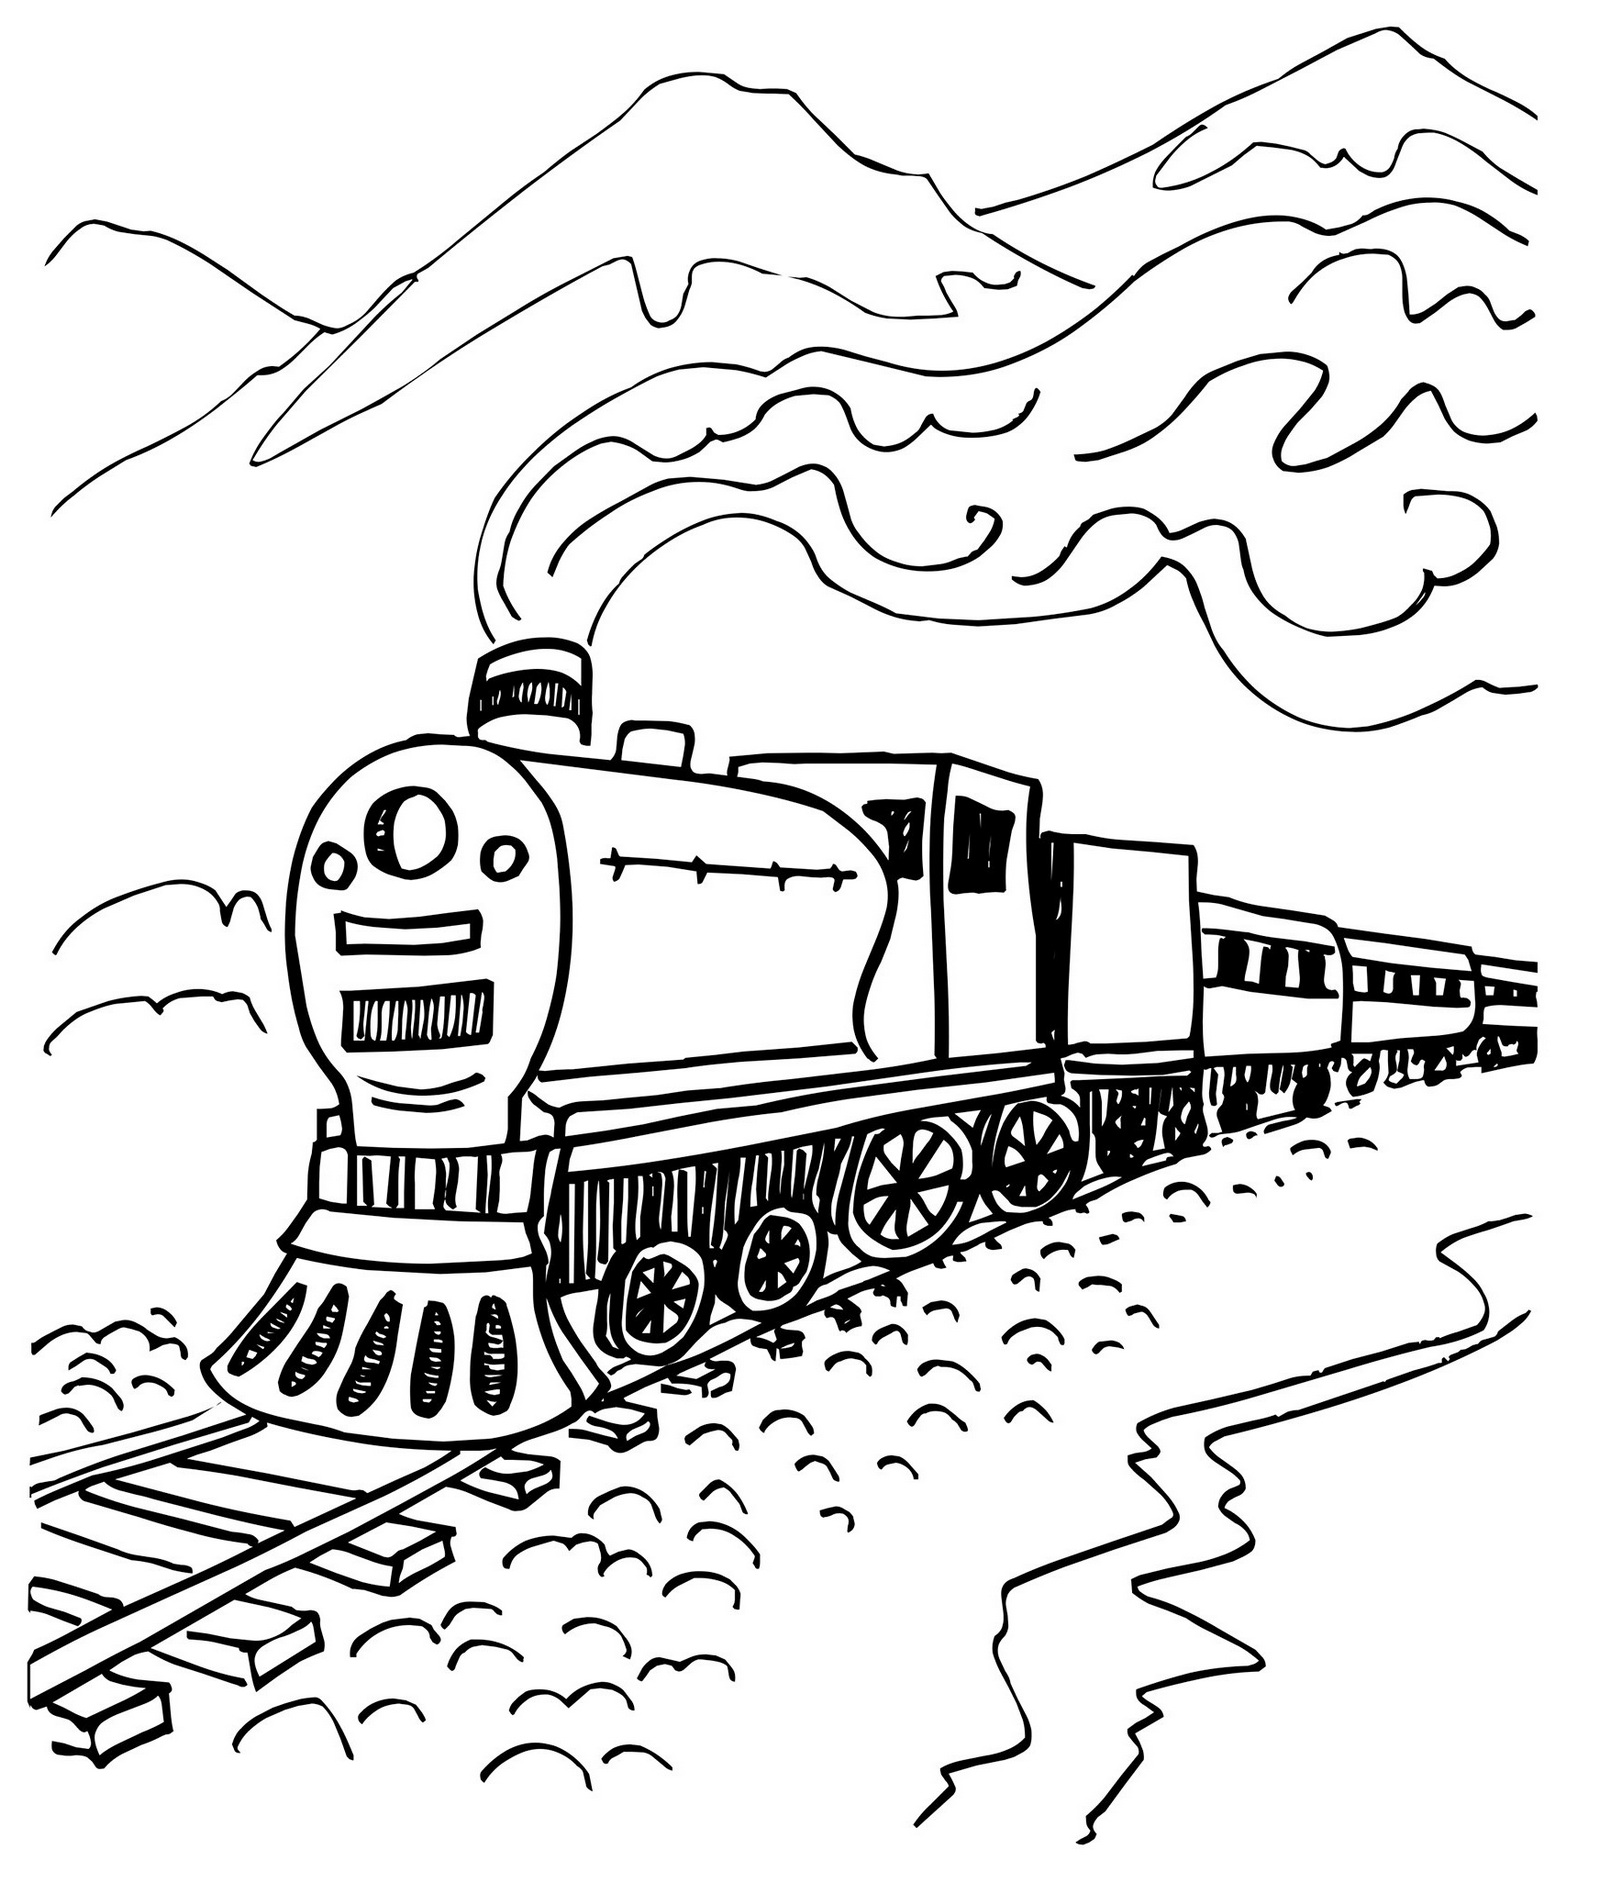 coloring pages trains train coloring pages download and print train coloring pages trains pages coloring